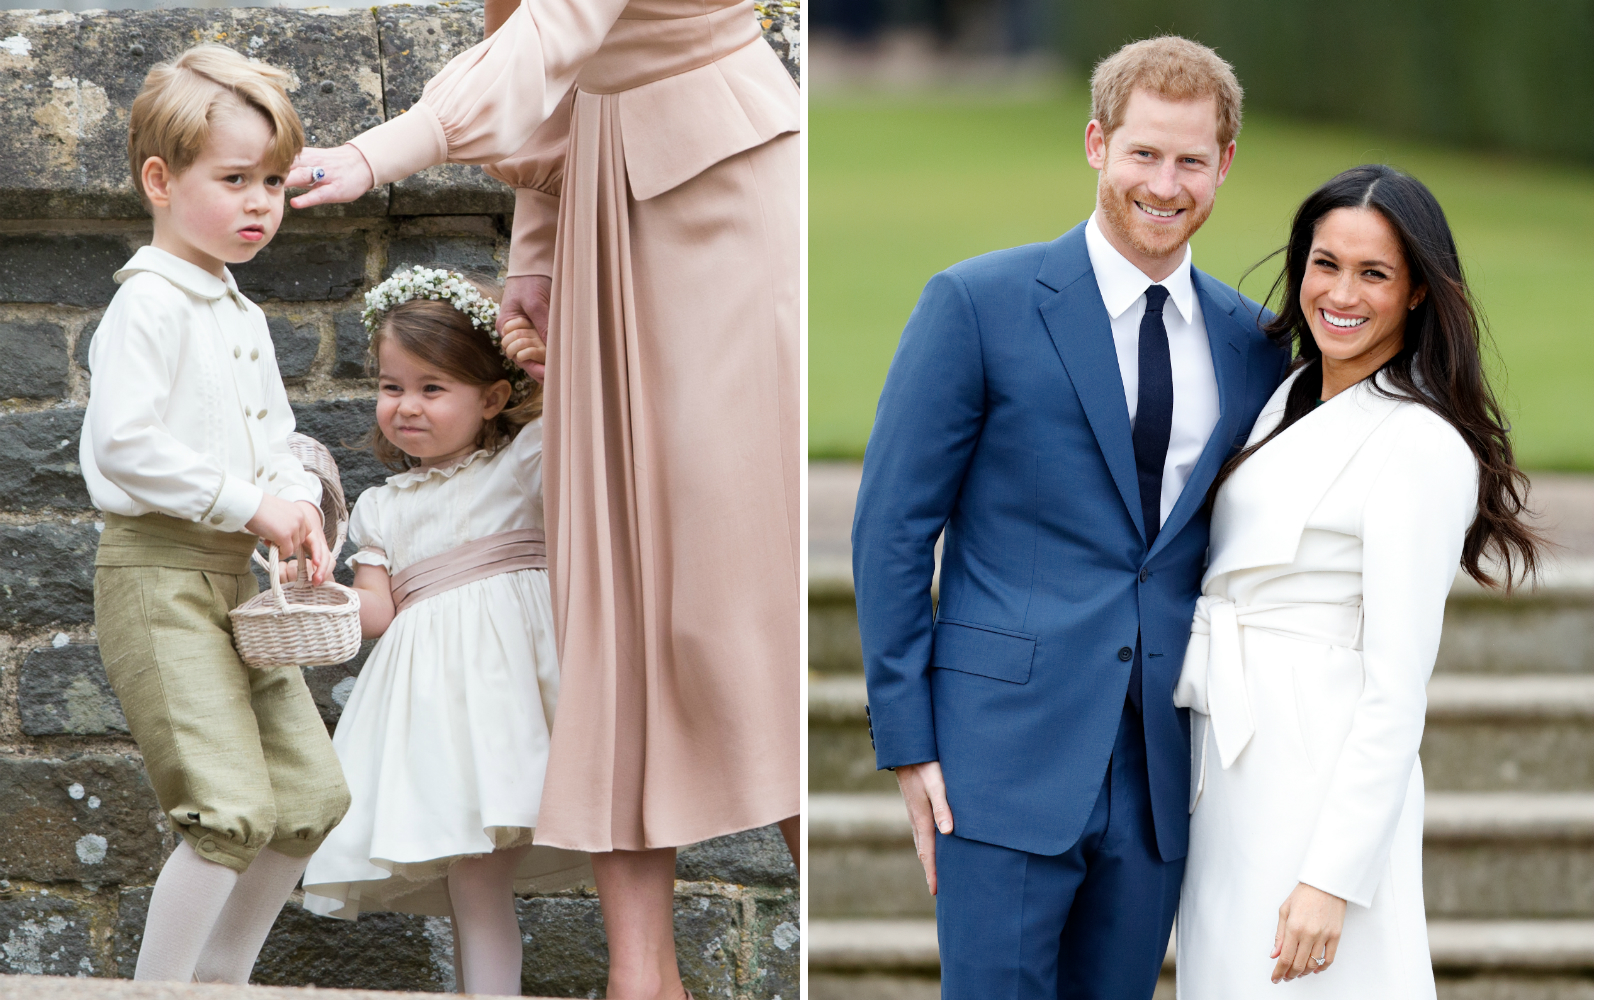 Prince George and Princess Charlotte will be in the 2018 royal wedding